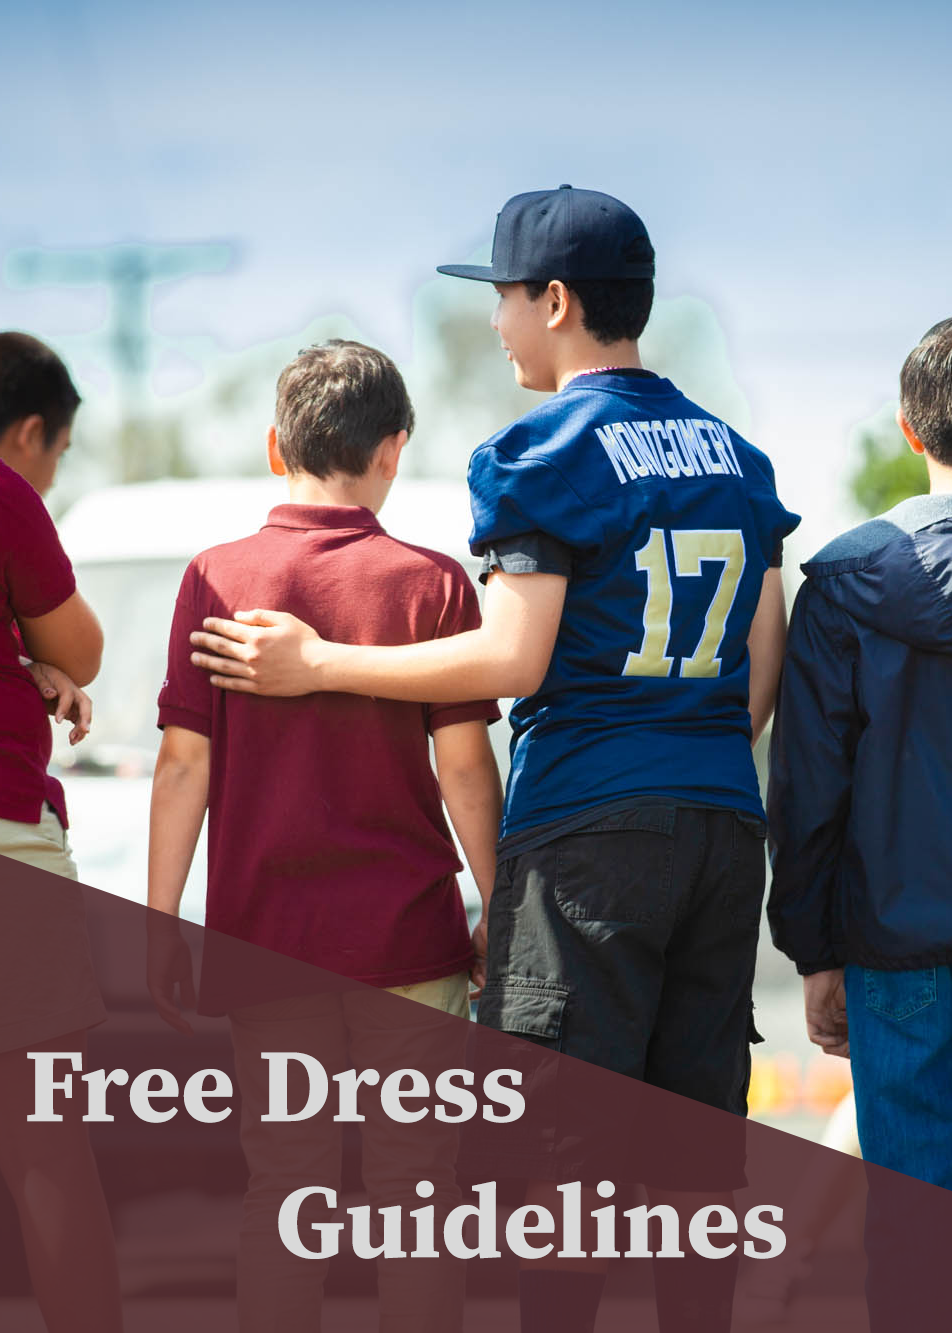 Free Dress Guidelines